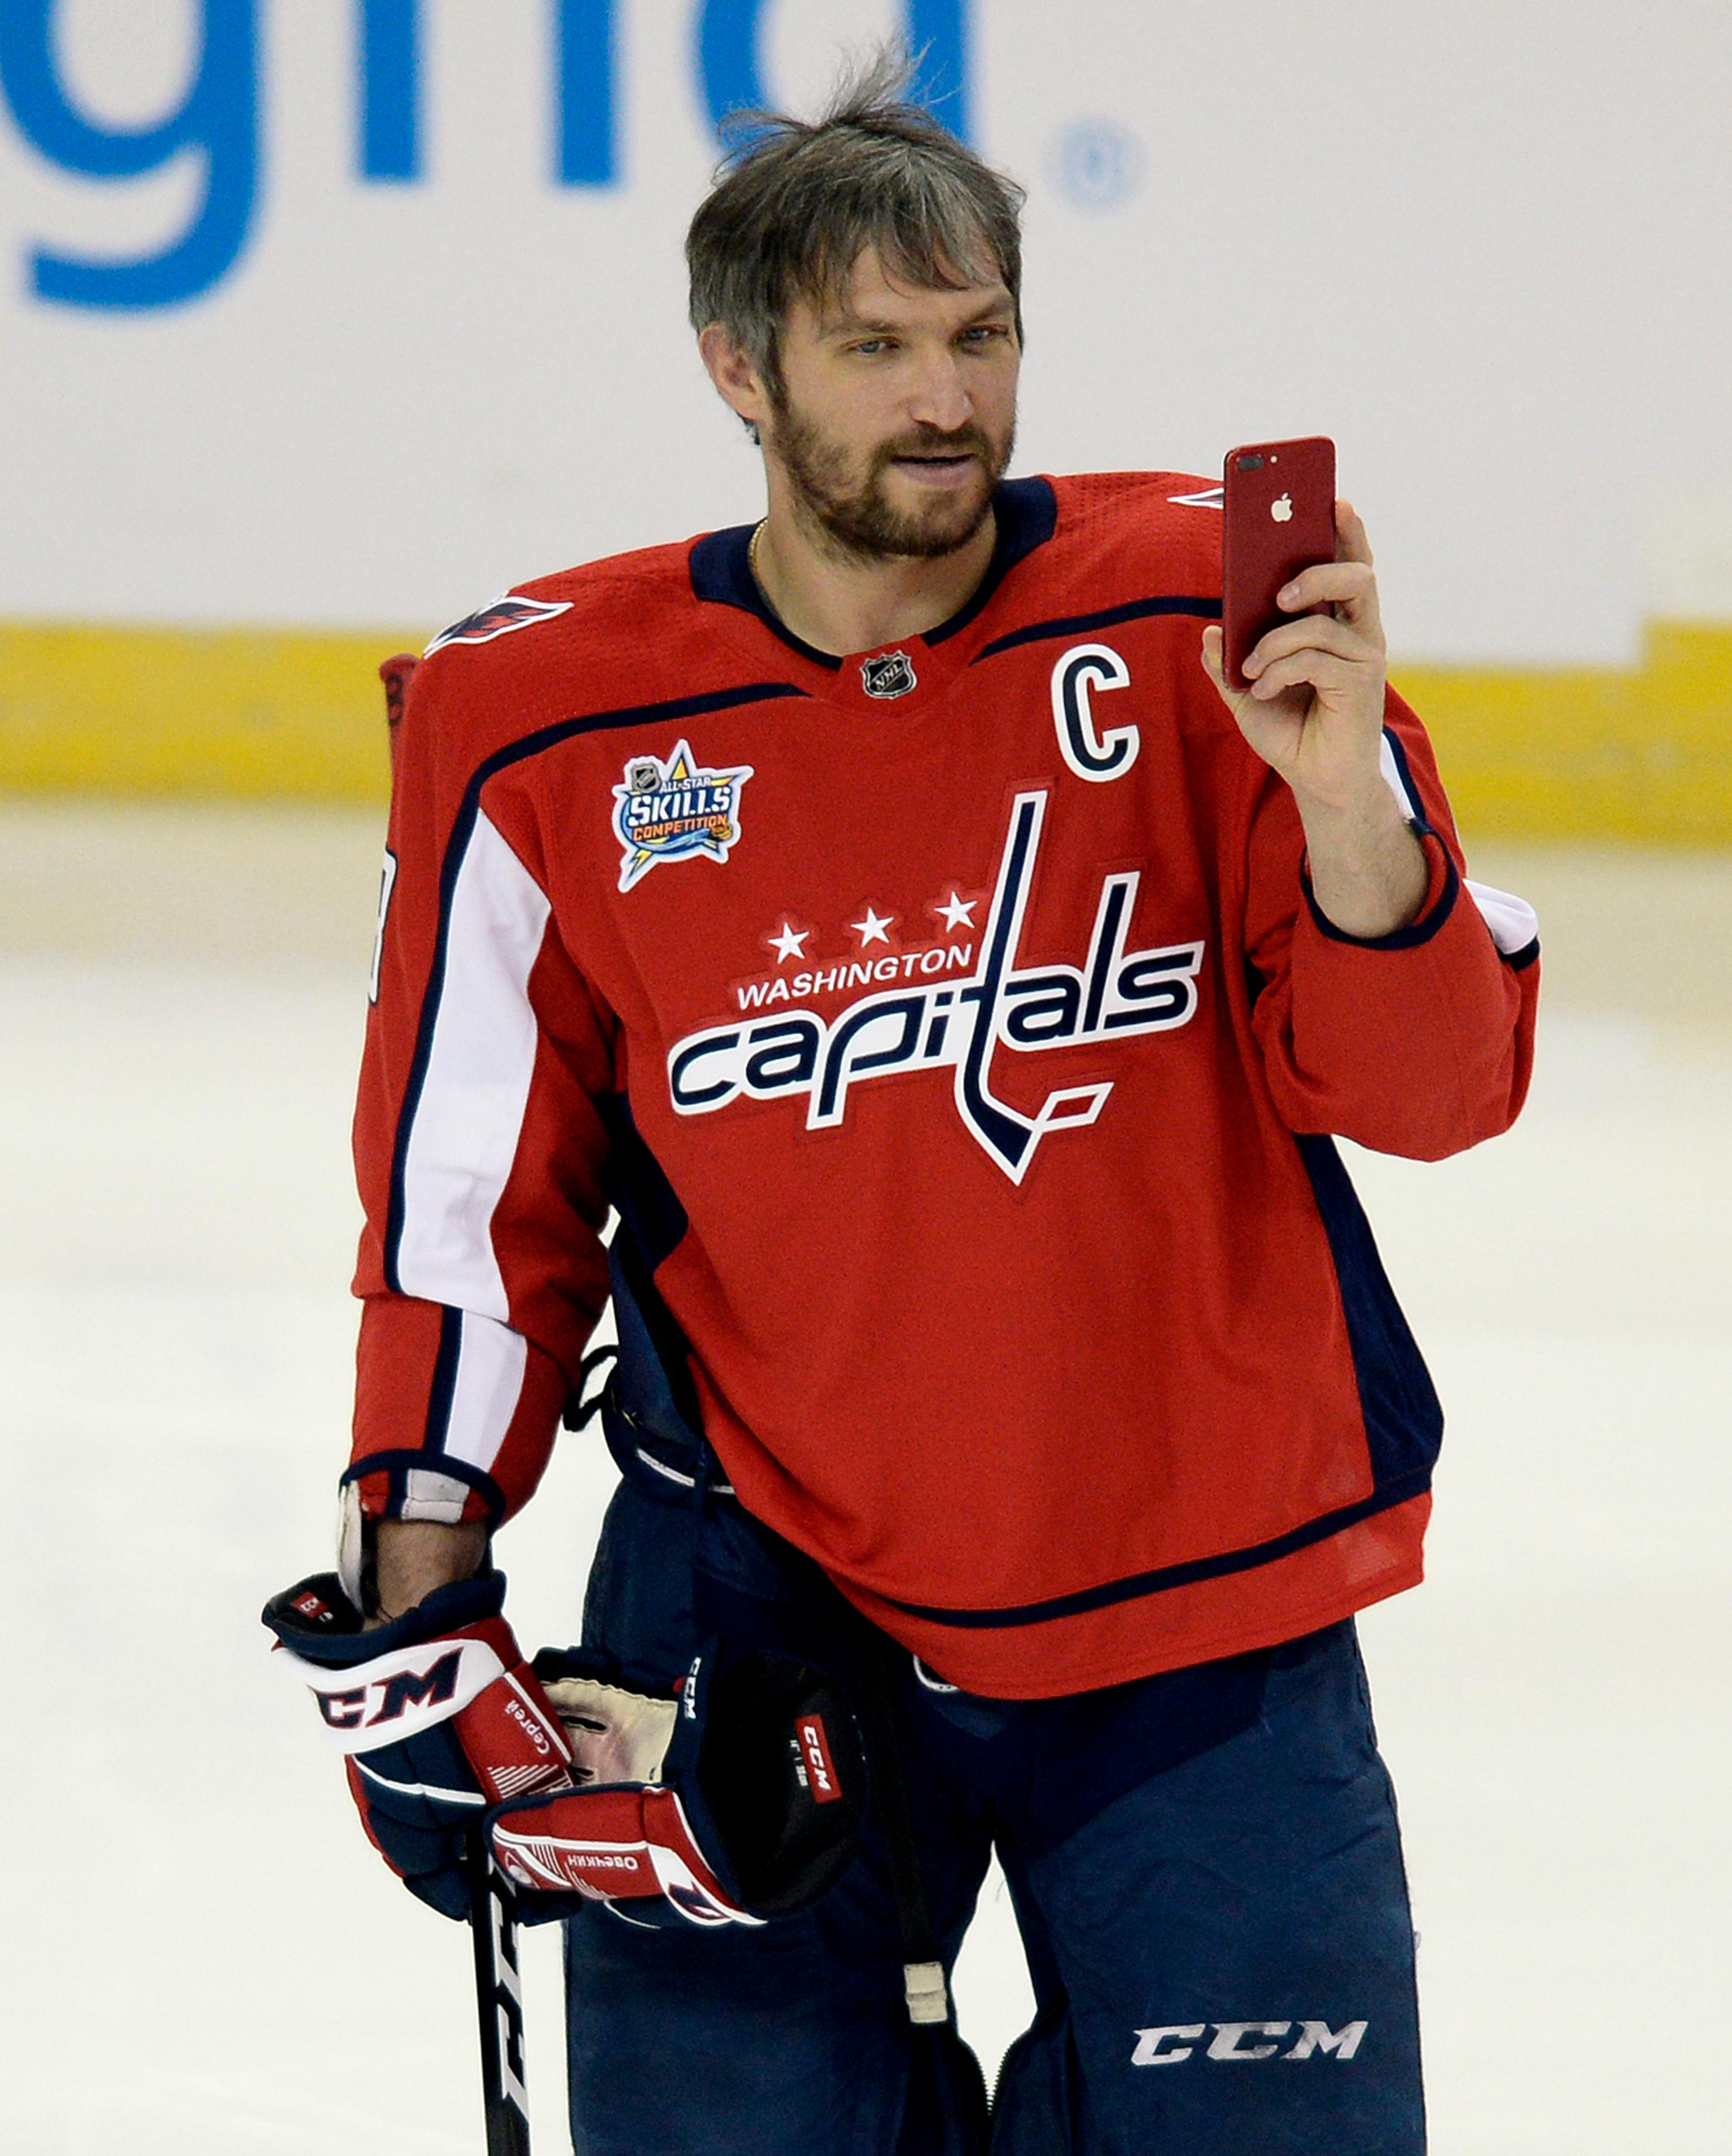 Washington Capitals forward Alexander Ovechkin records on a smart phone before the Skills Competition, part of the NHL All-Star weekend events, Saturday, Jan. 27, 2018, in Tampa, Fla. (AP Photo/Jason Behnken)